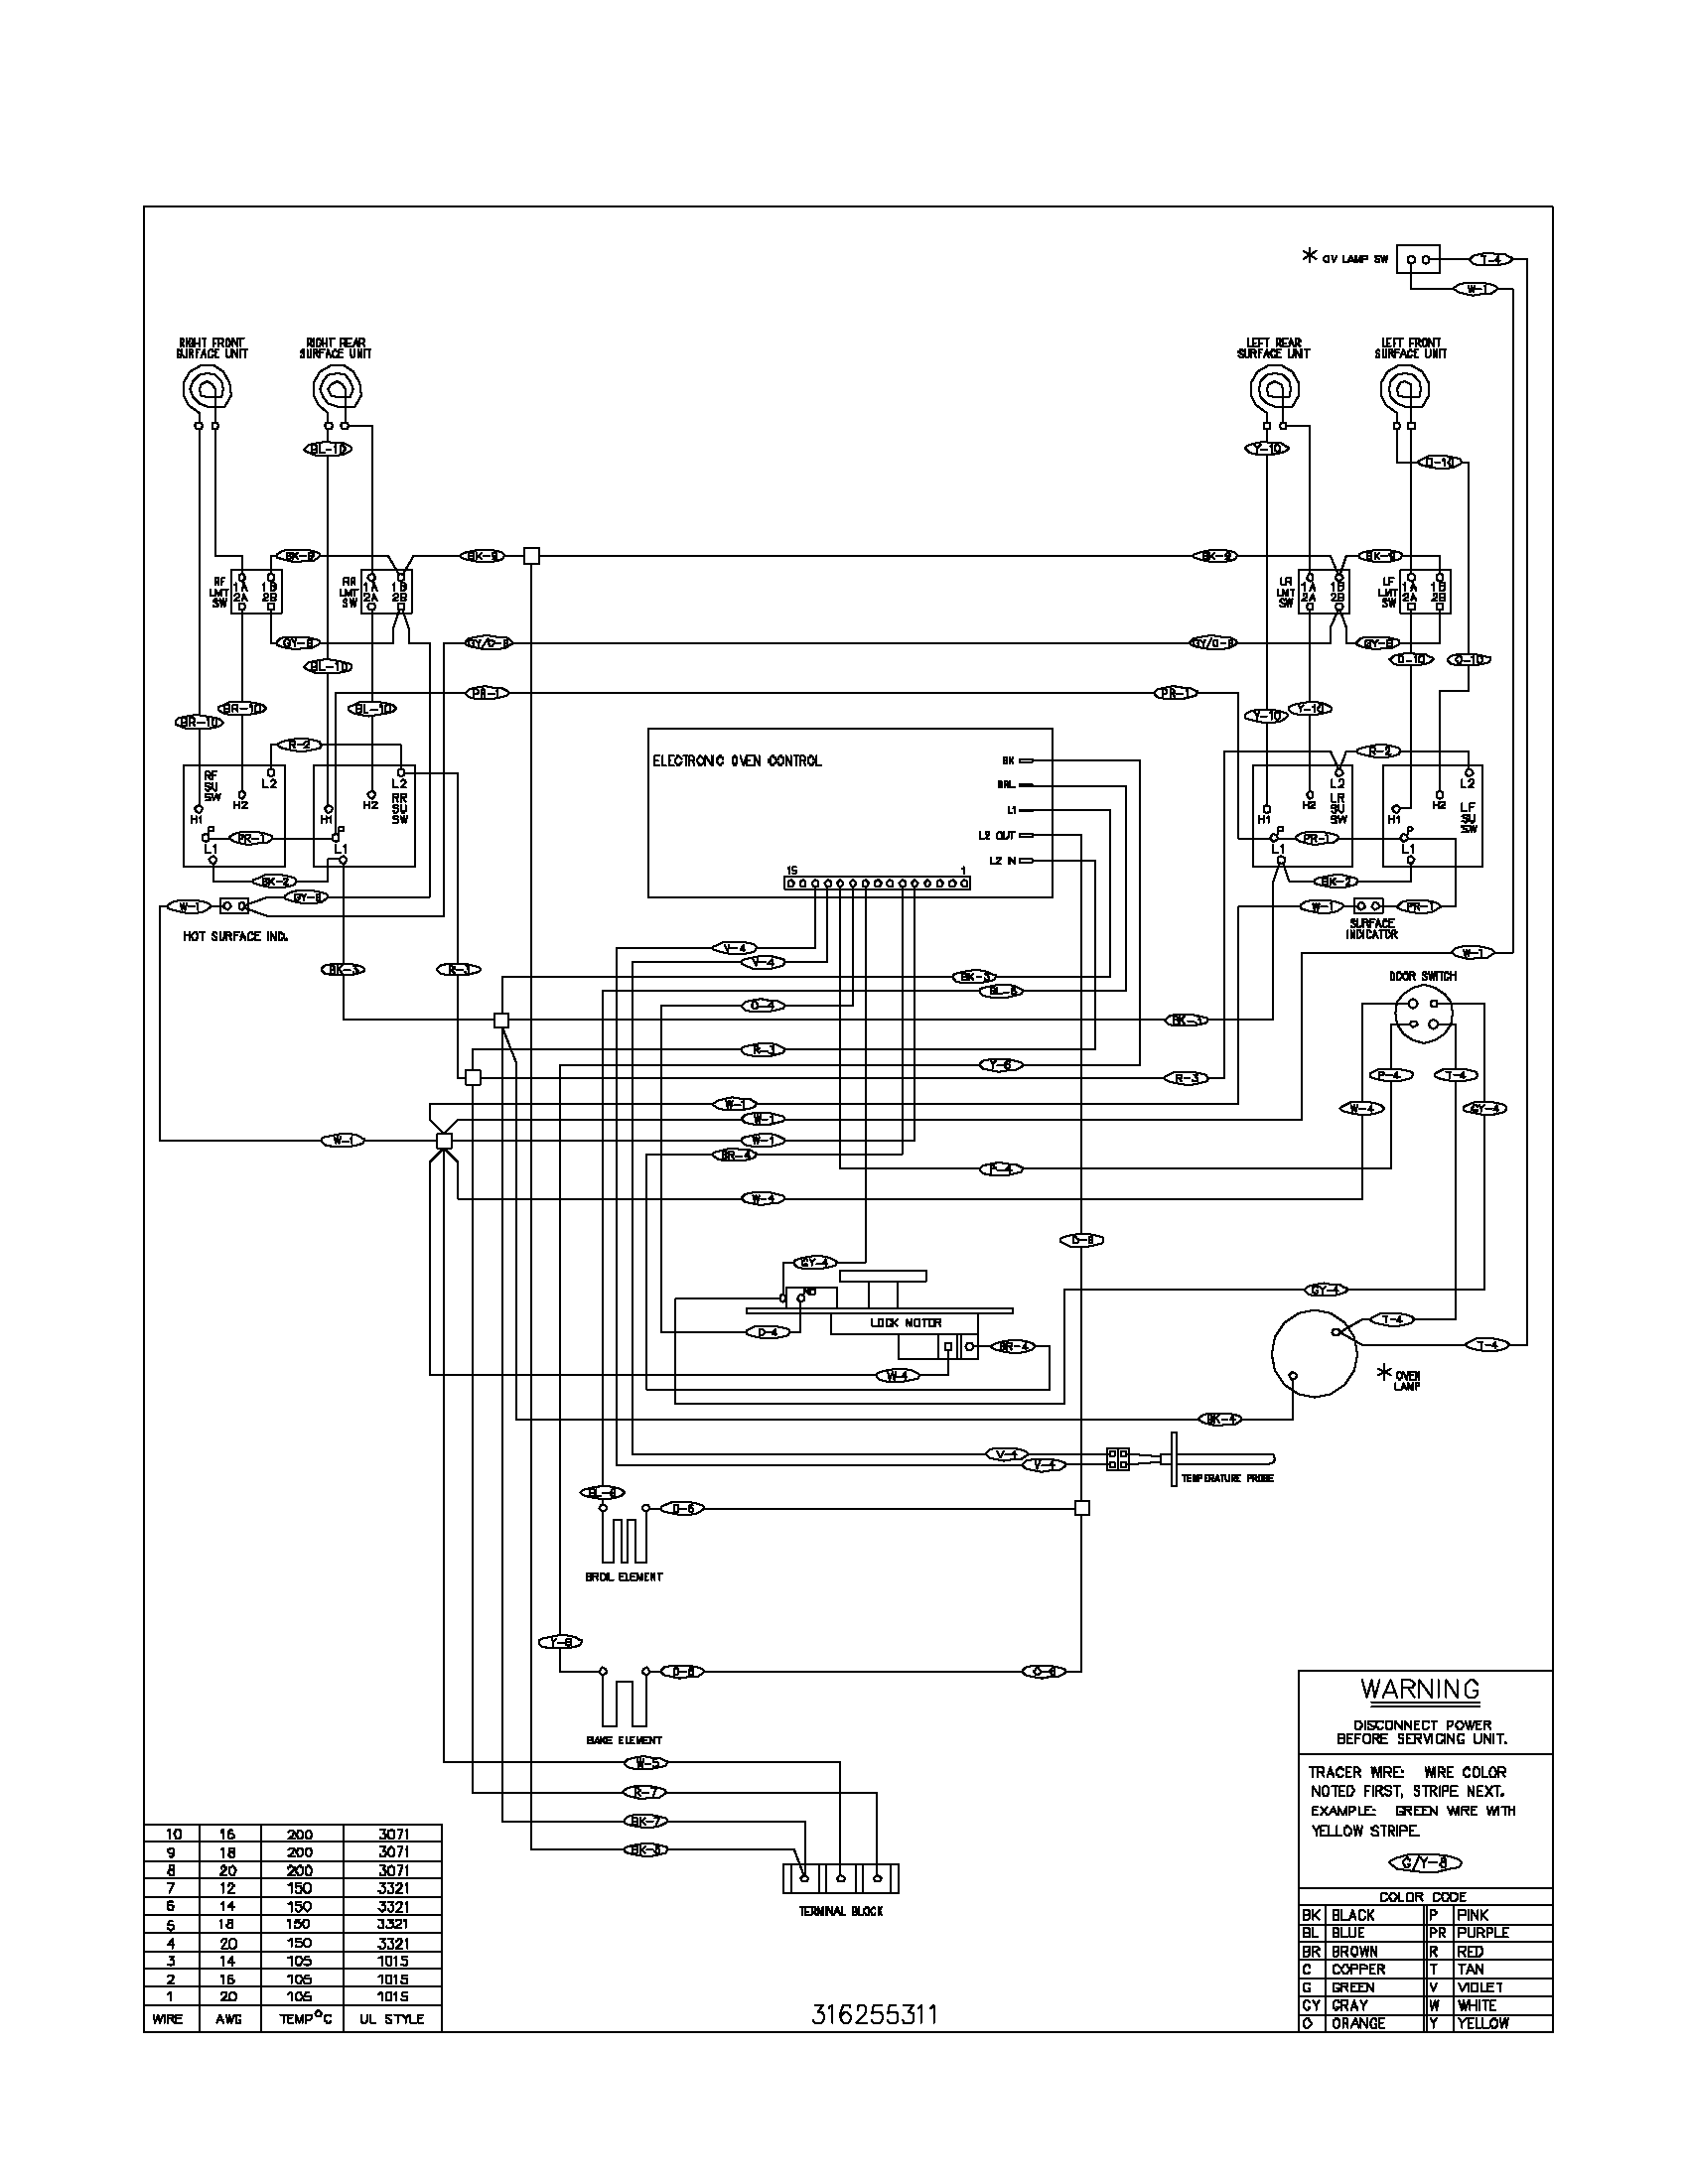 Electric Oven Thermostat Wiring Diagram ~ Frigidaire fef ccb electric range timer stove clocks